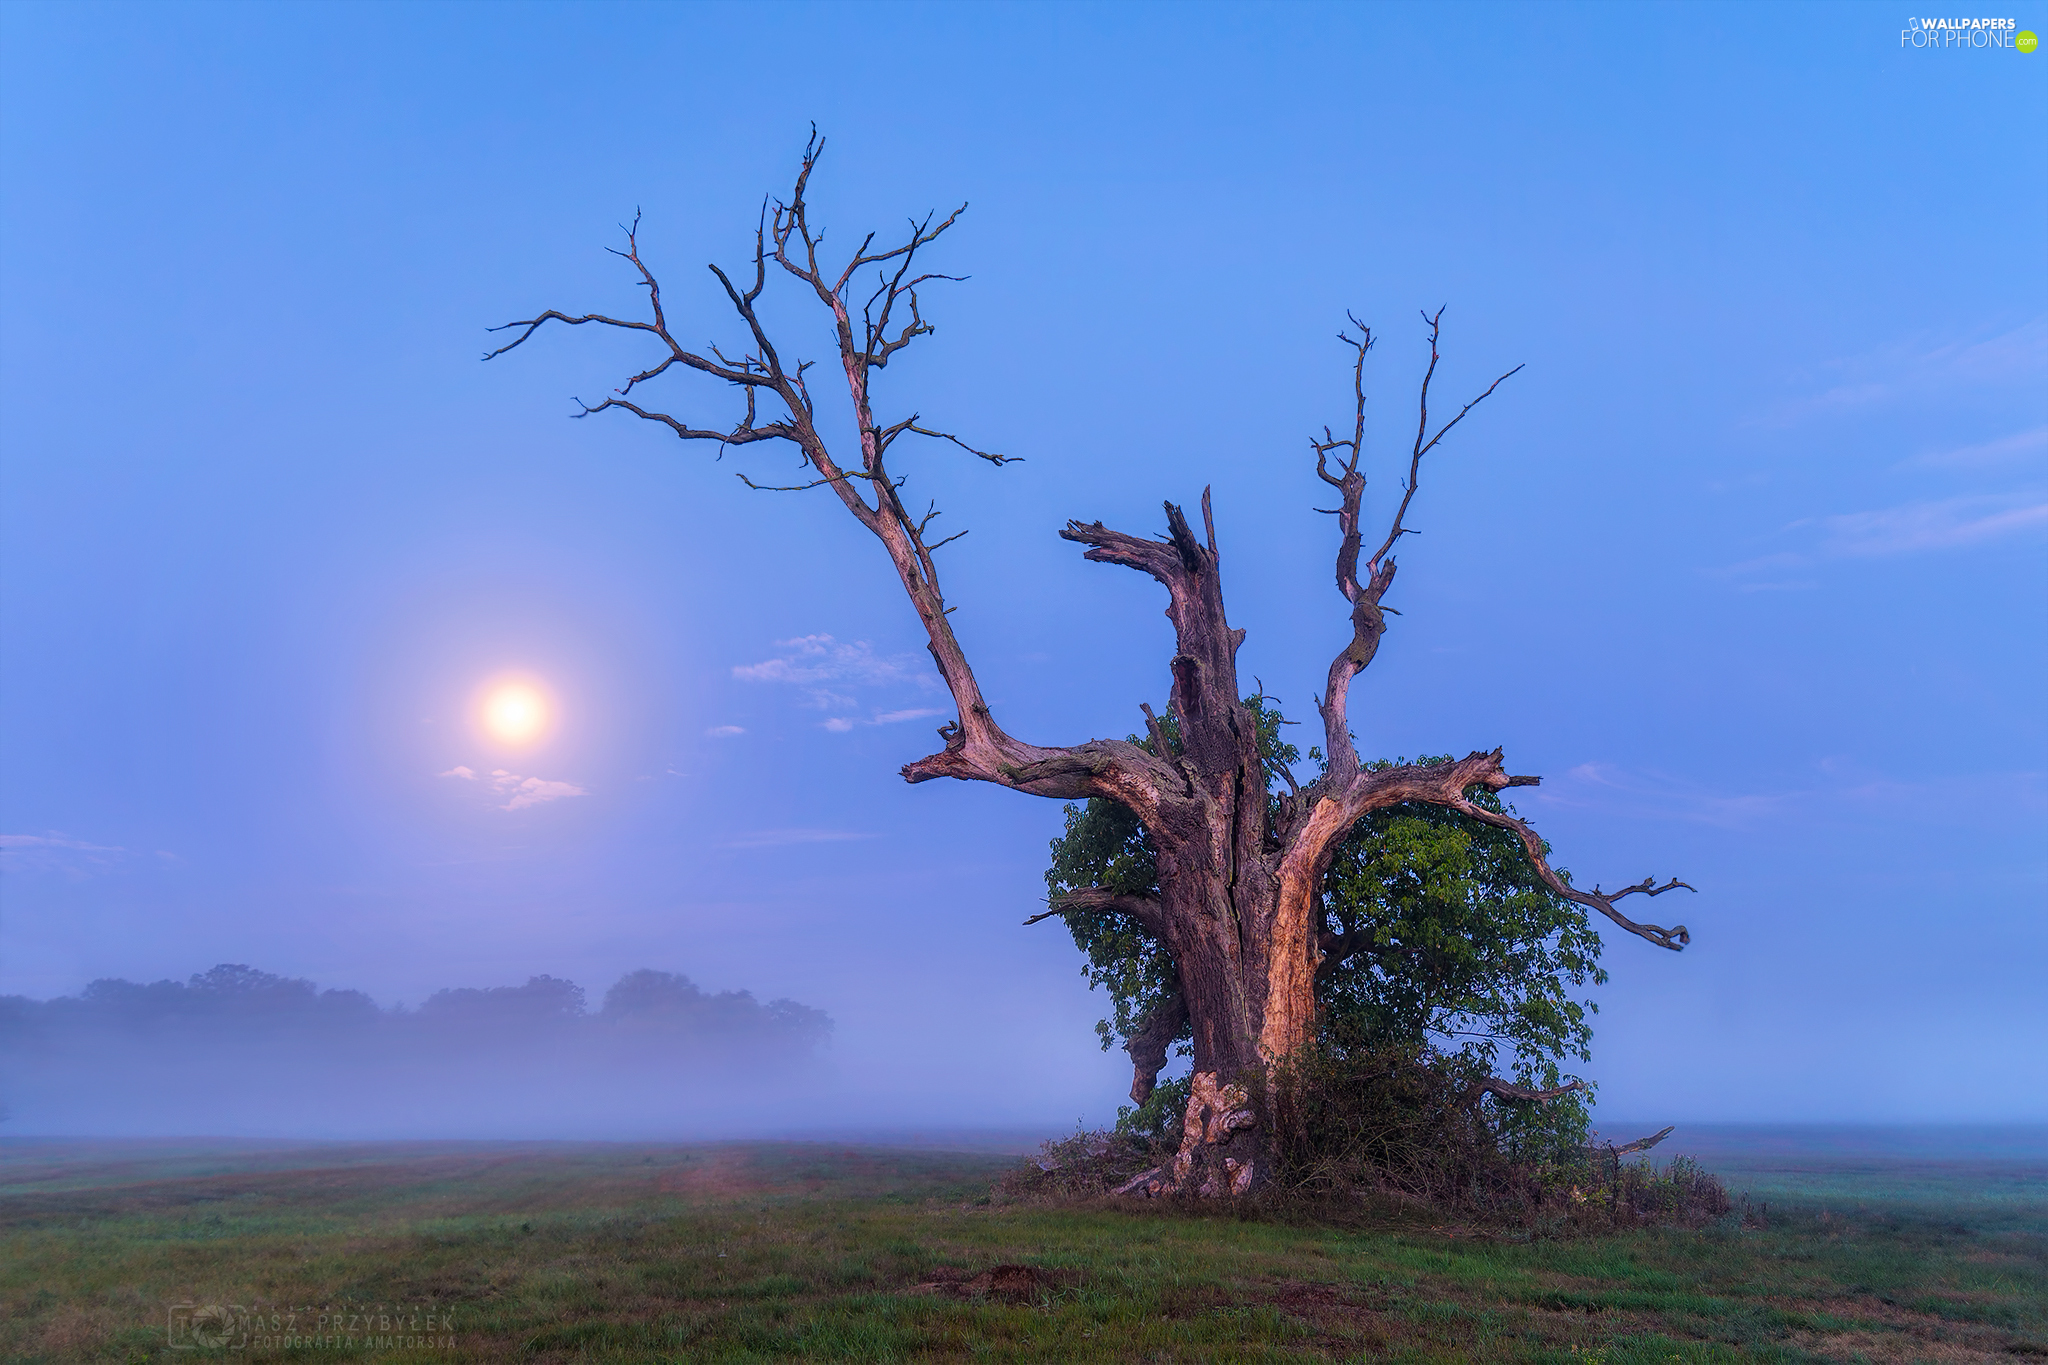 trunk, trees, moon, Fog, oak, withered